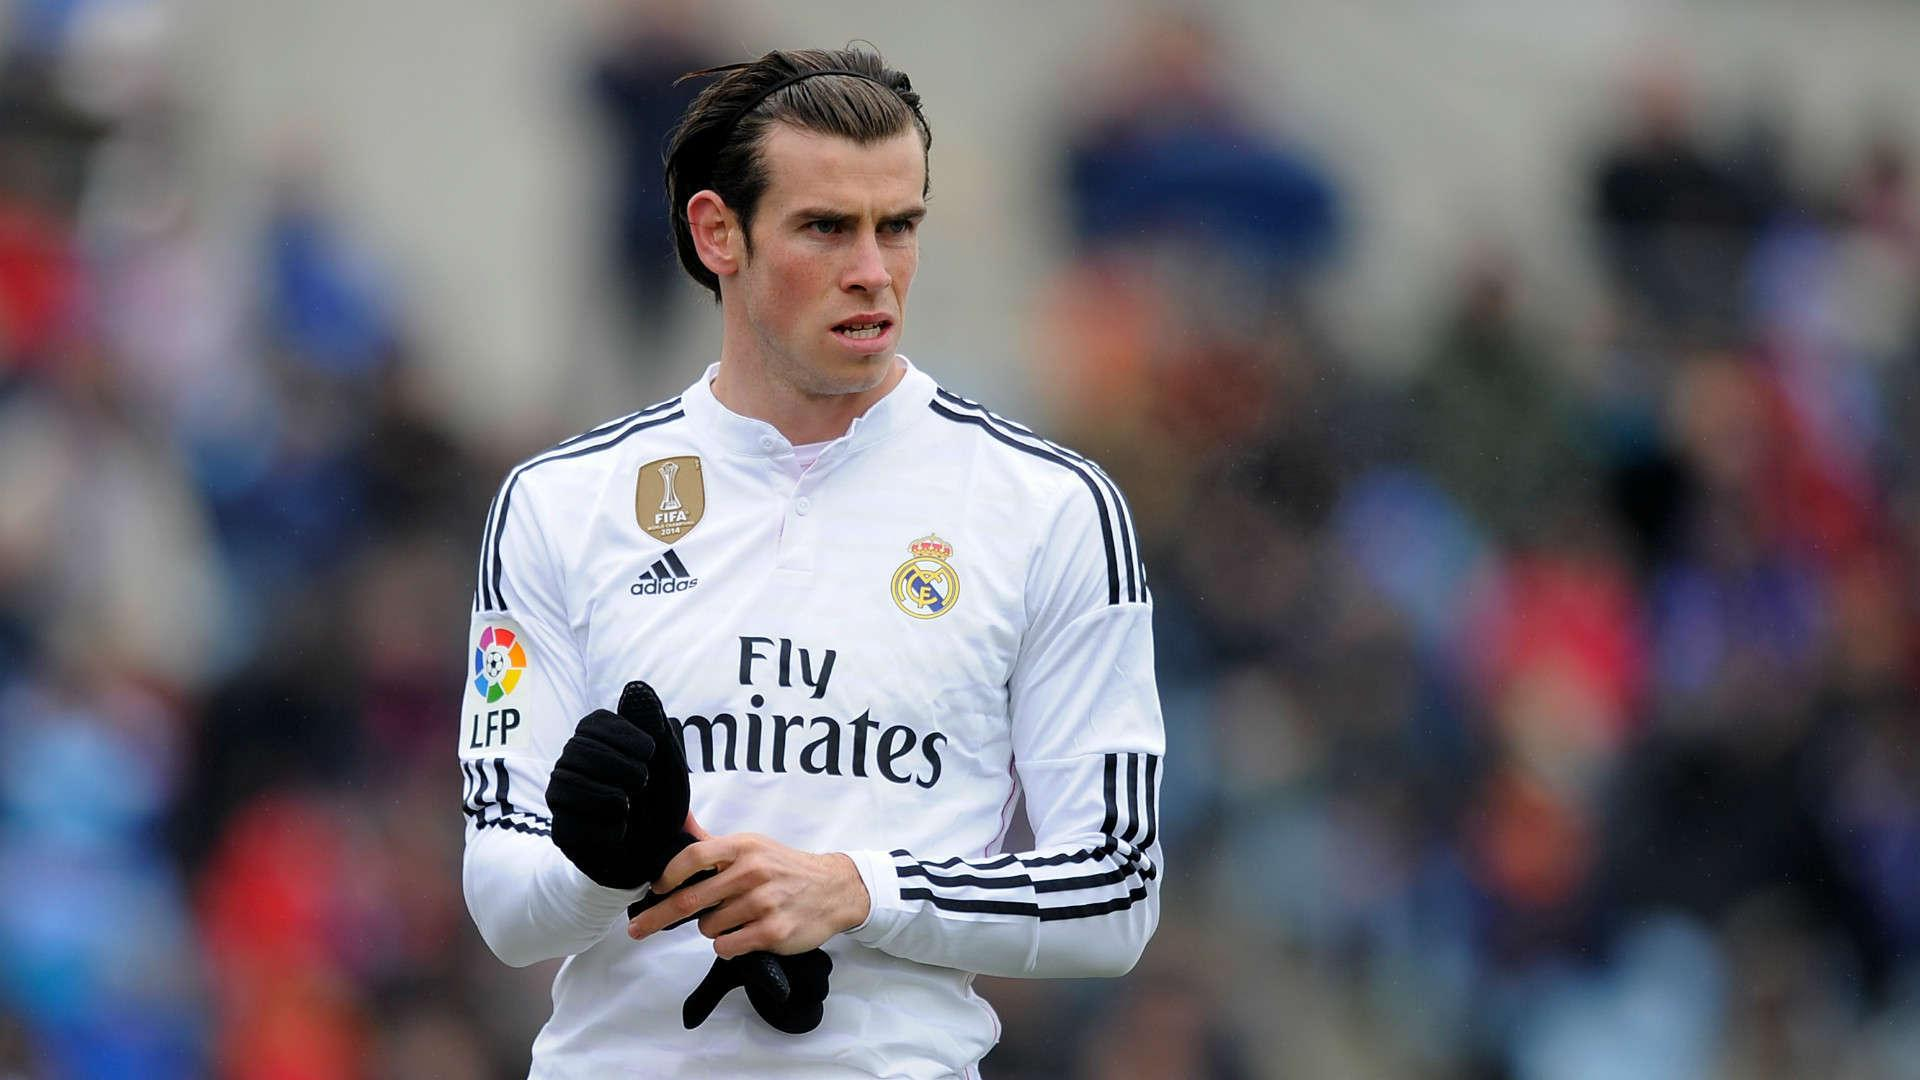 Gareth bale wallpapers 2016 hd wallpaper cave download free 50 gareth bale hd images and wallpapers voltagebd Gallery